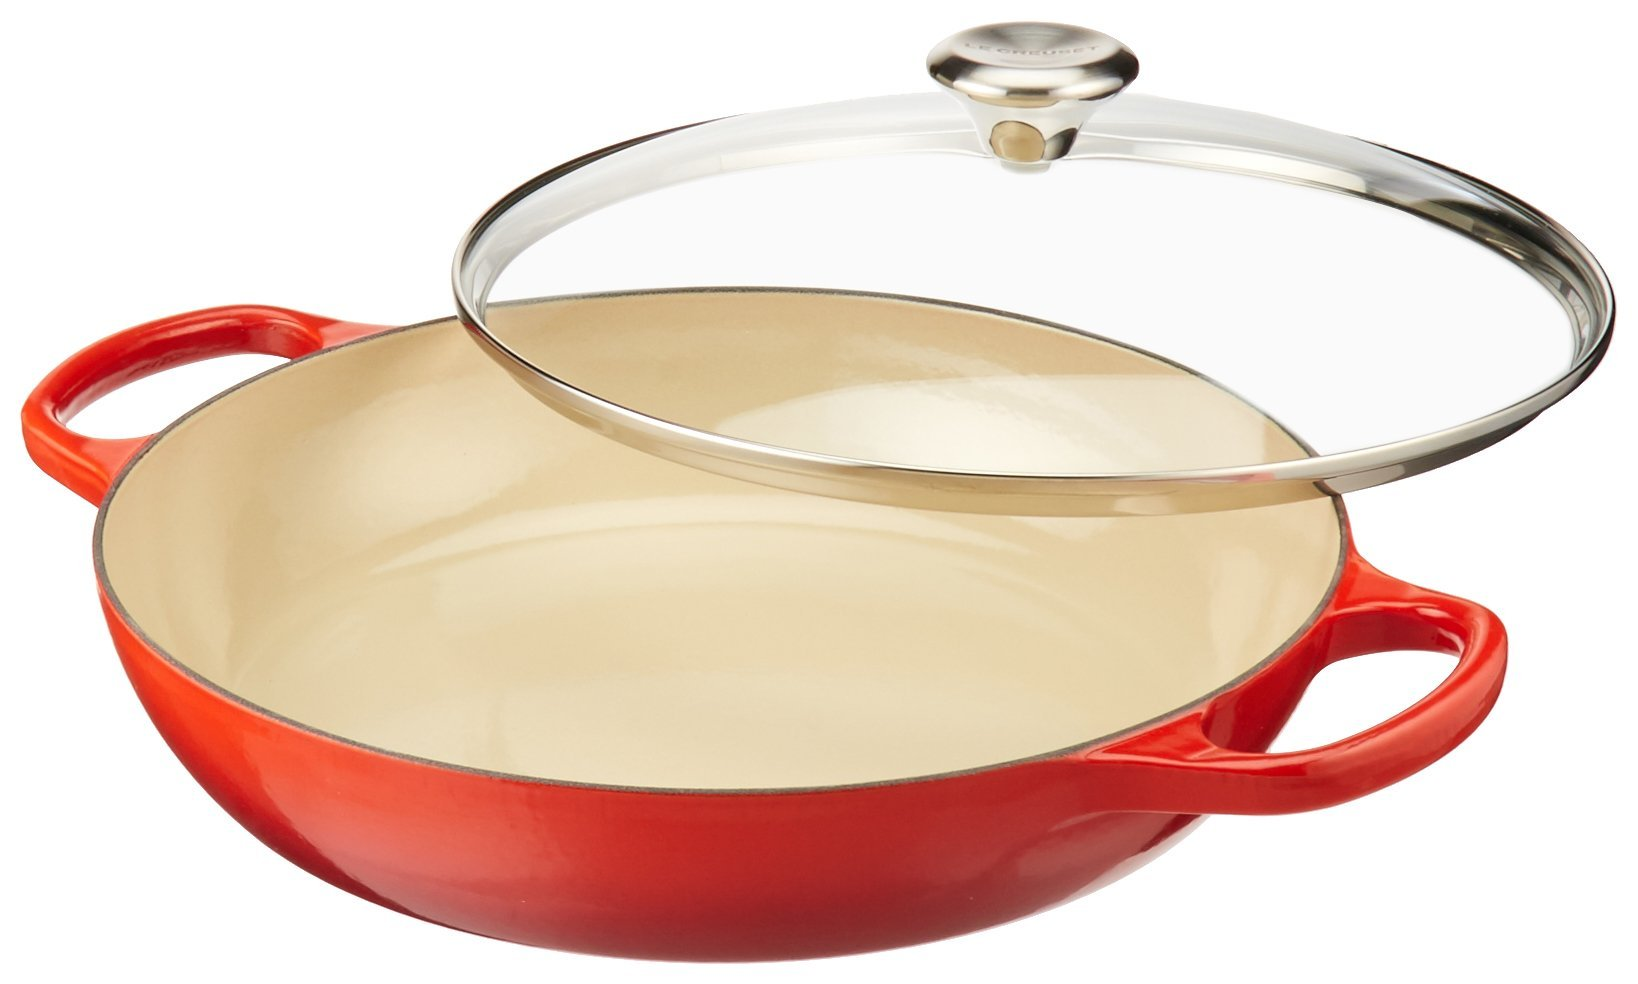 Le Creuset of America Enameled Cast Iron Buffet Casserole with Glass Lid, 3 1/2 quart, Cerise (Cherry Red)